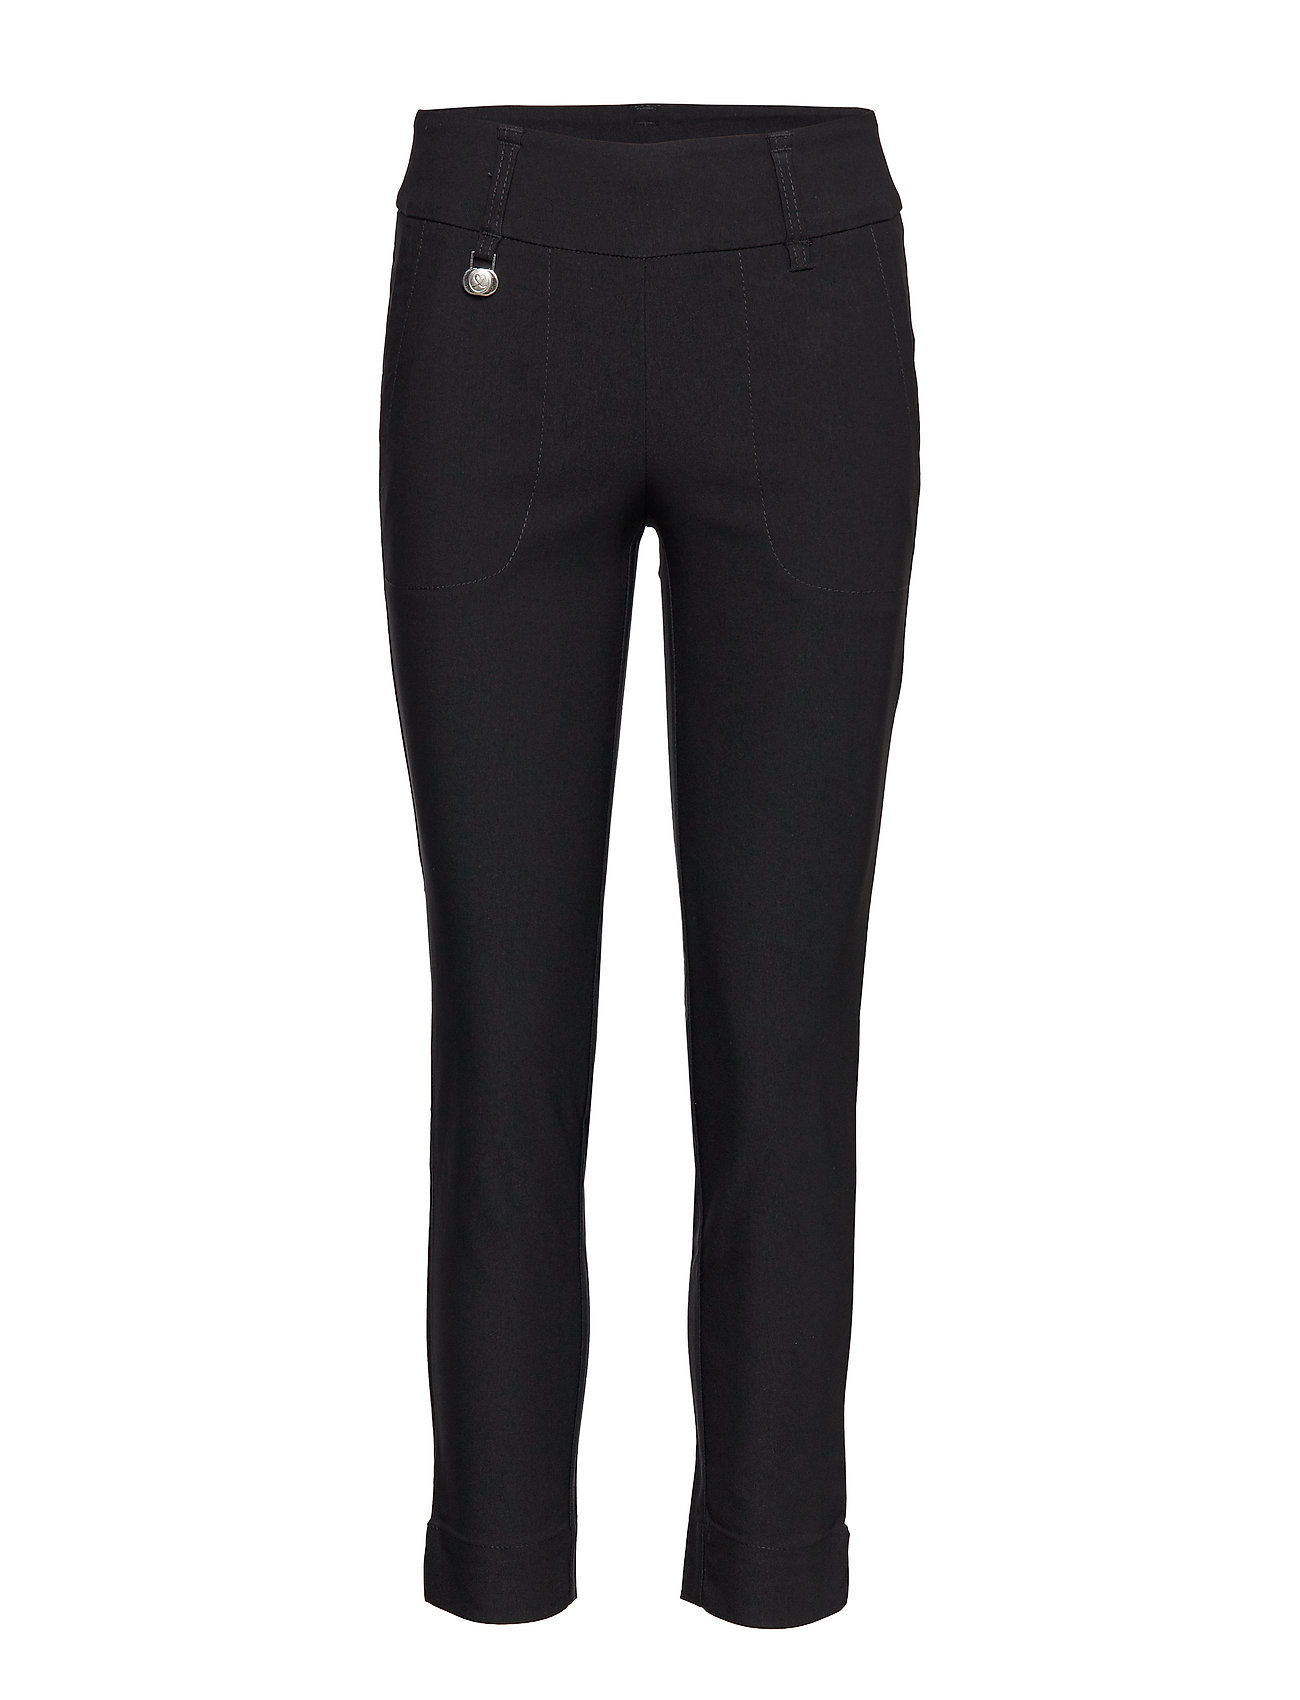 Image of Magic High Water 94 Cm Sport Pants Sort Daily Sports (3228190045)